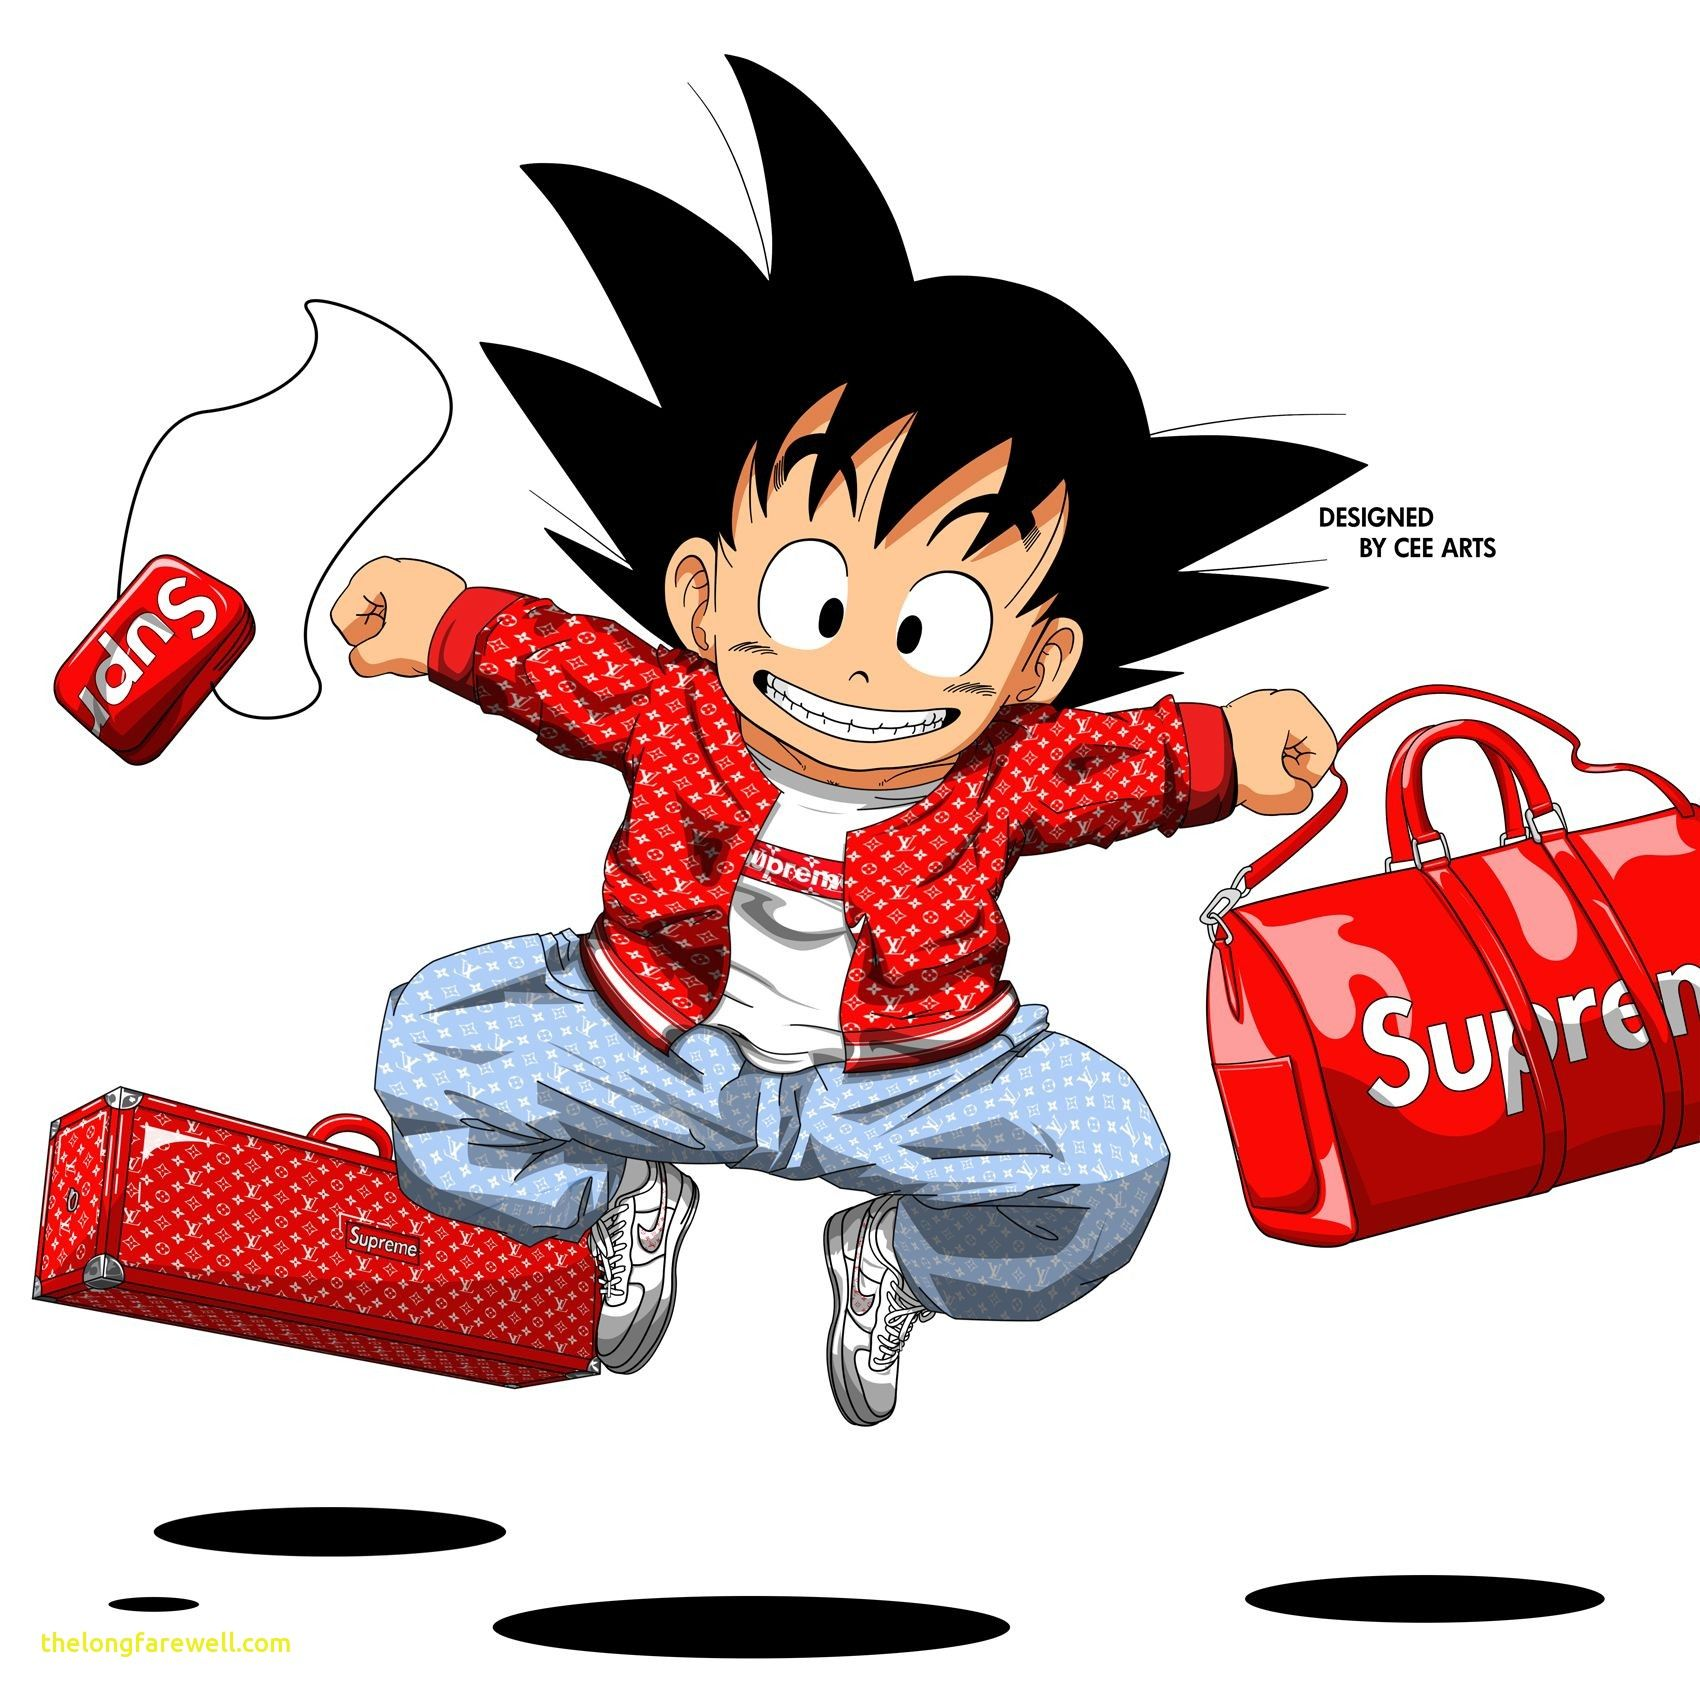 DBZ Supreme Phone Wallpapers   Top DBZ Supreme Phone 1700x1700